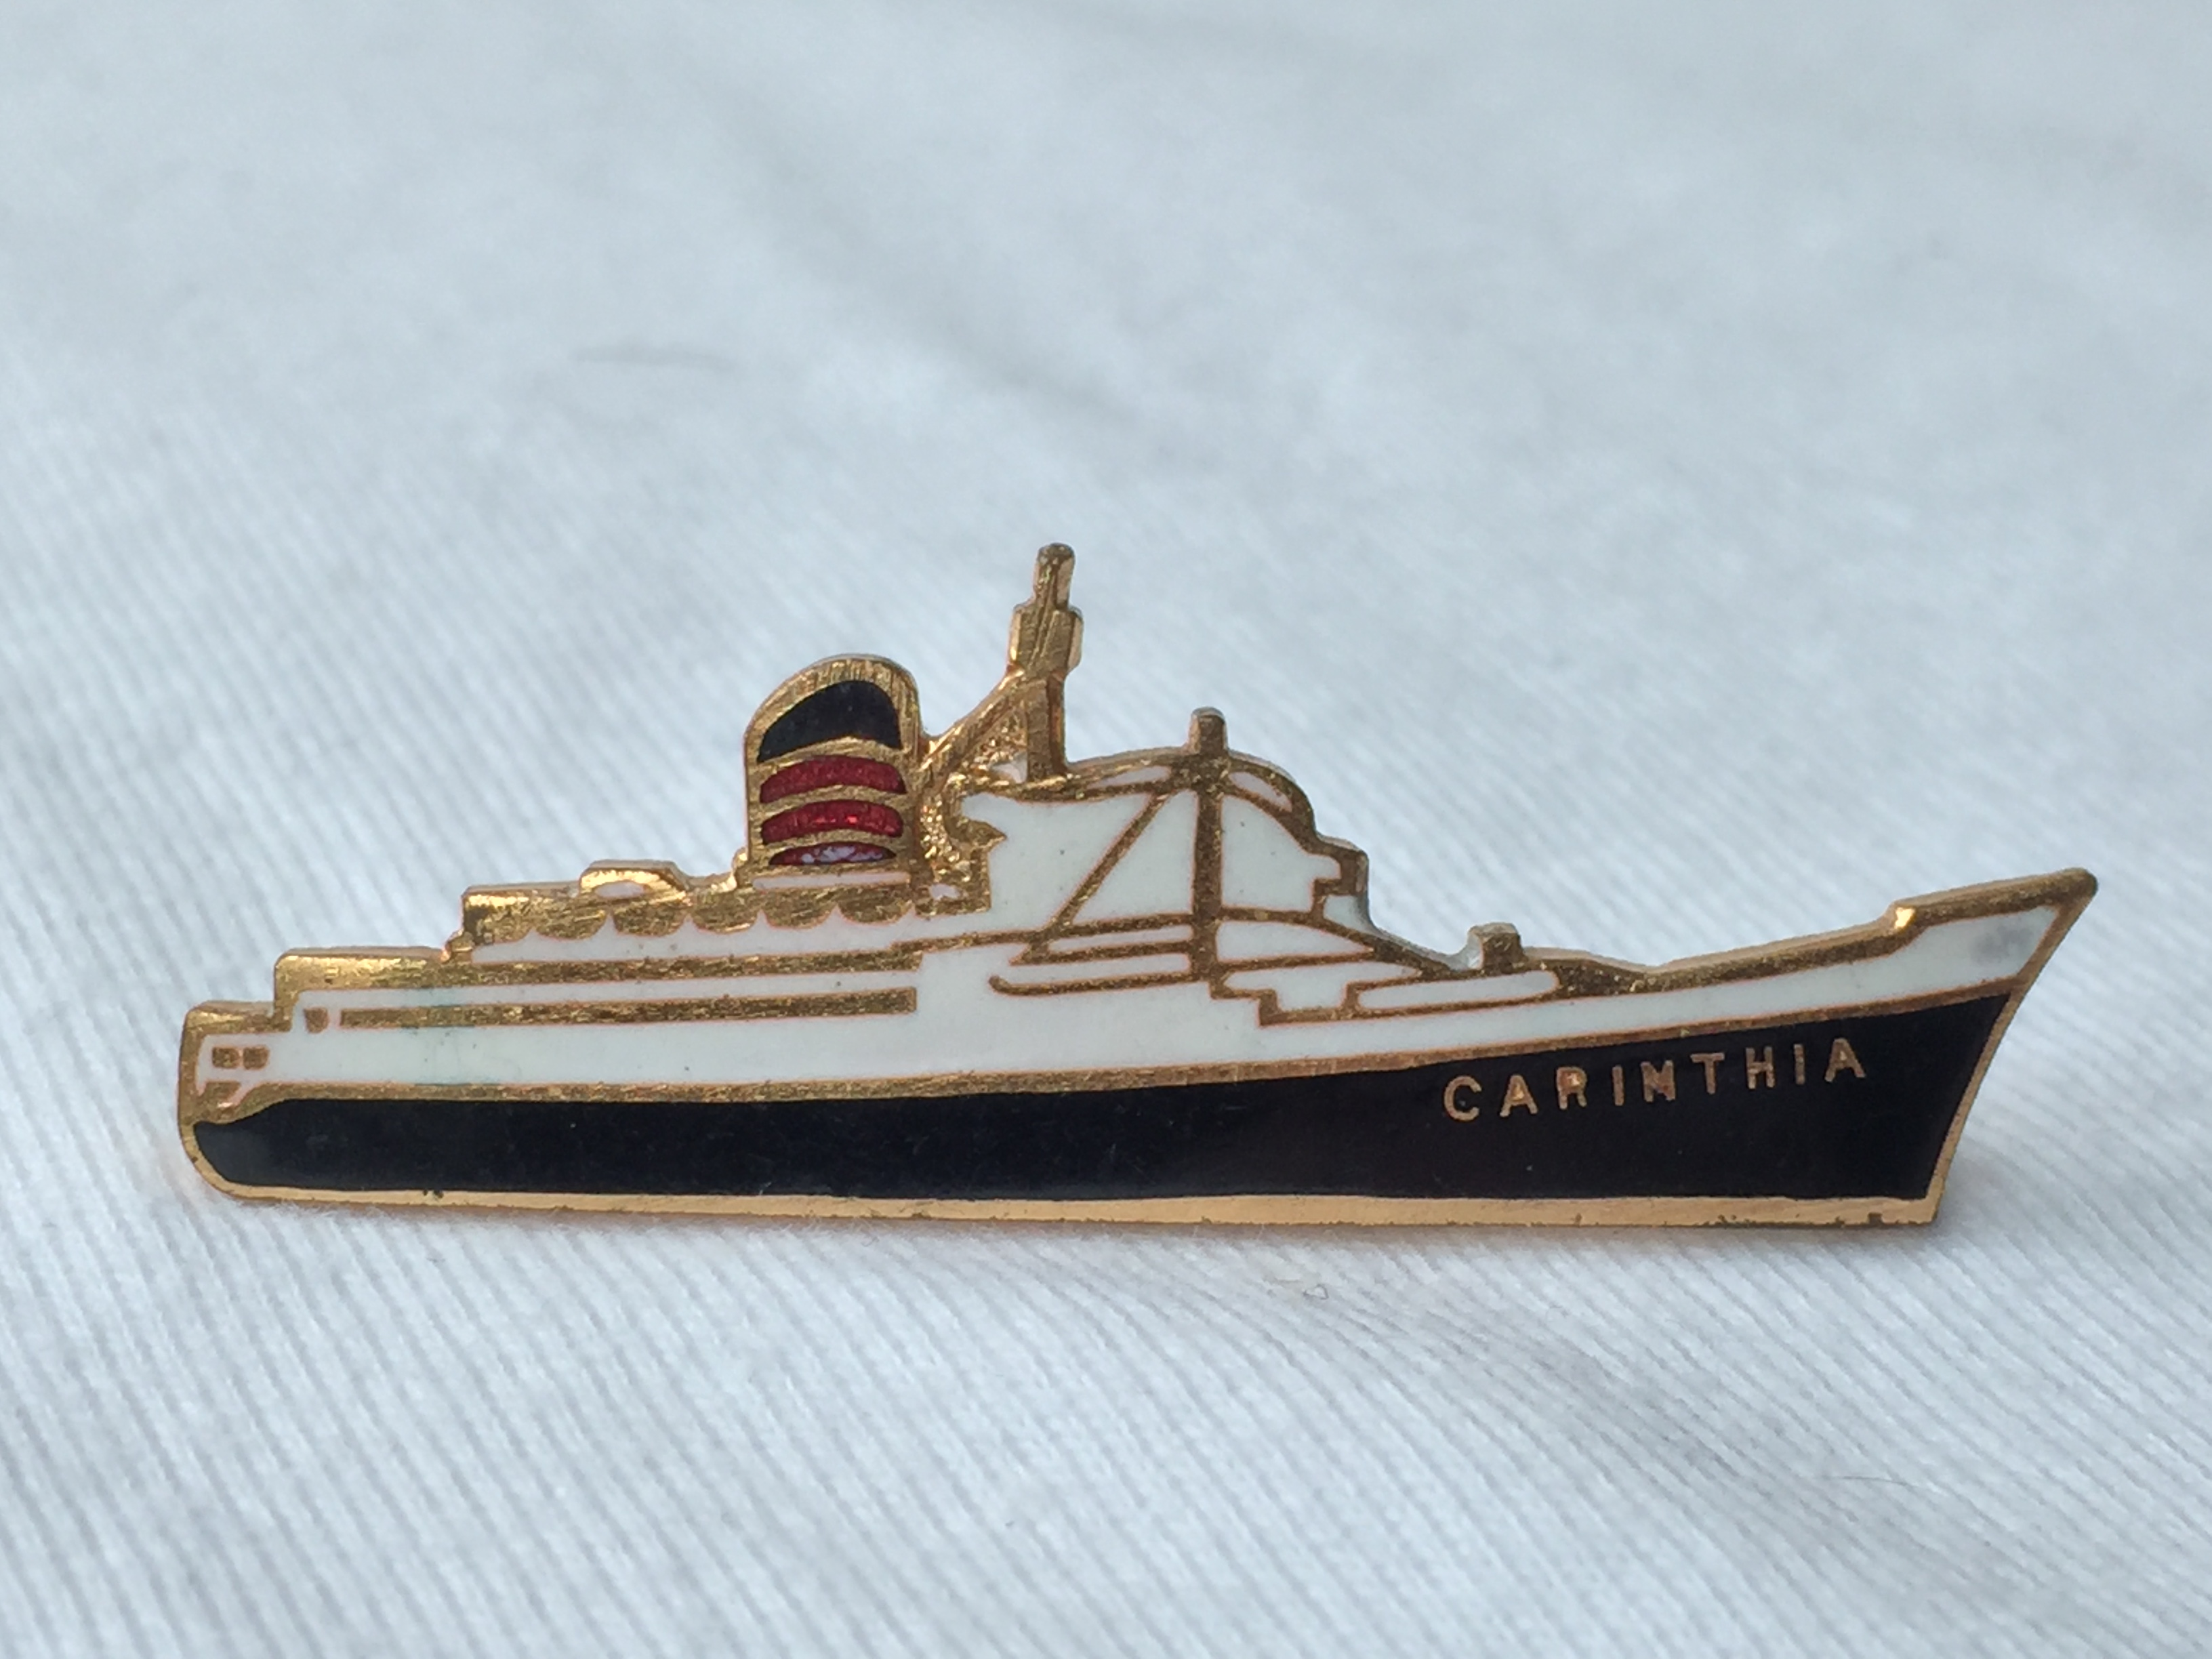 EARLY SHIP SHAPE LAPEL PIN FROM THE CUNARD LINE VESSEL THE CARINTHIA